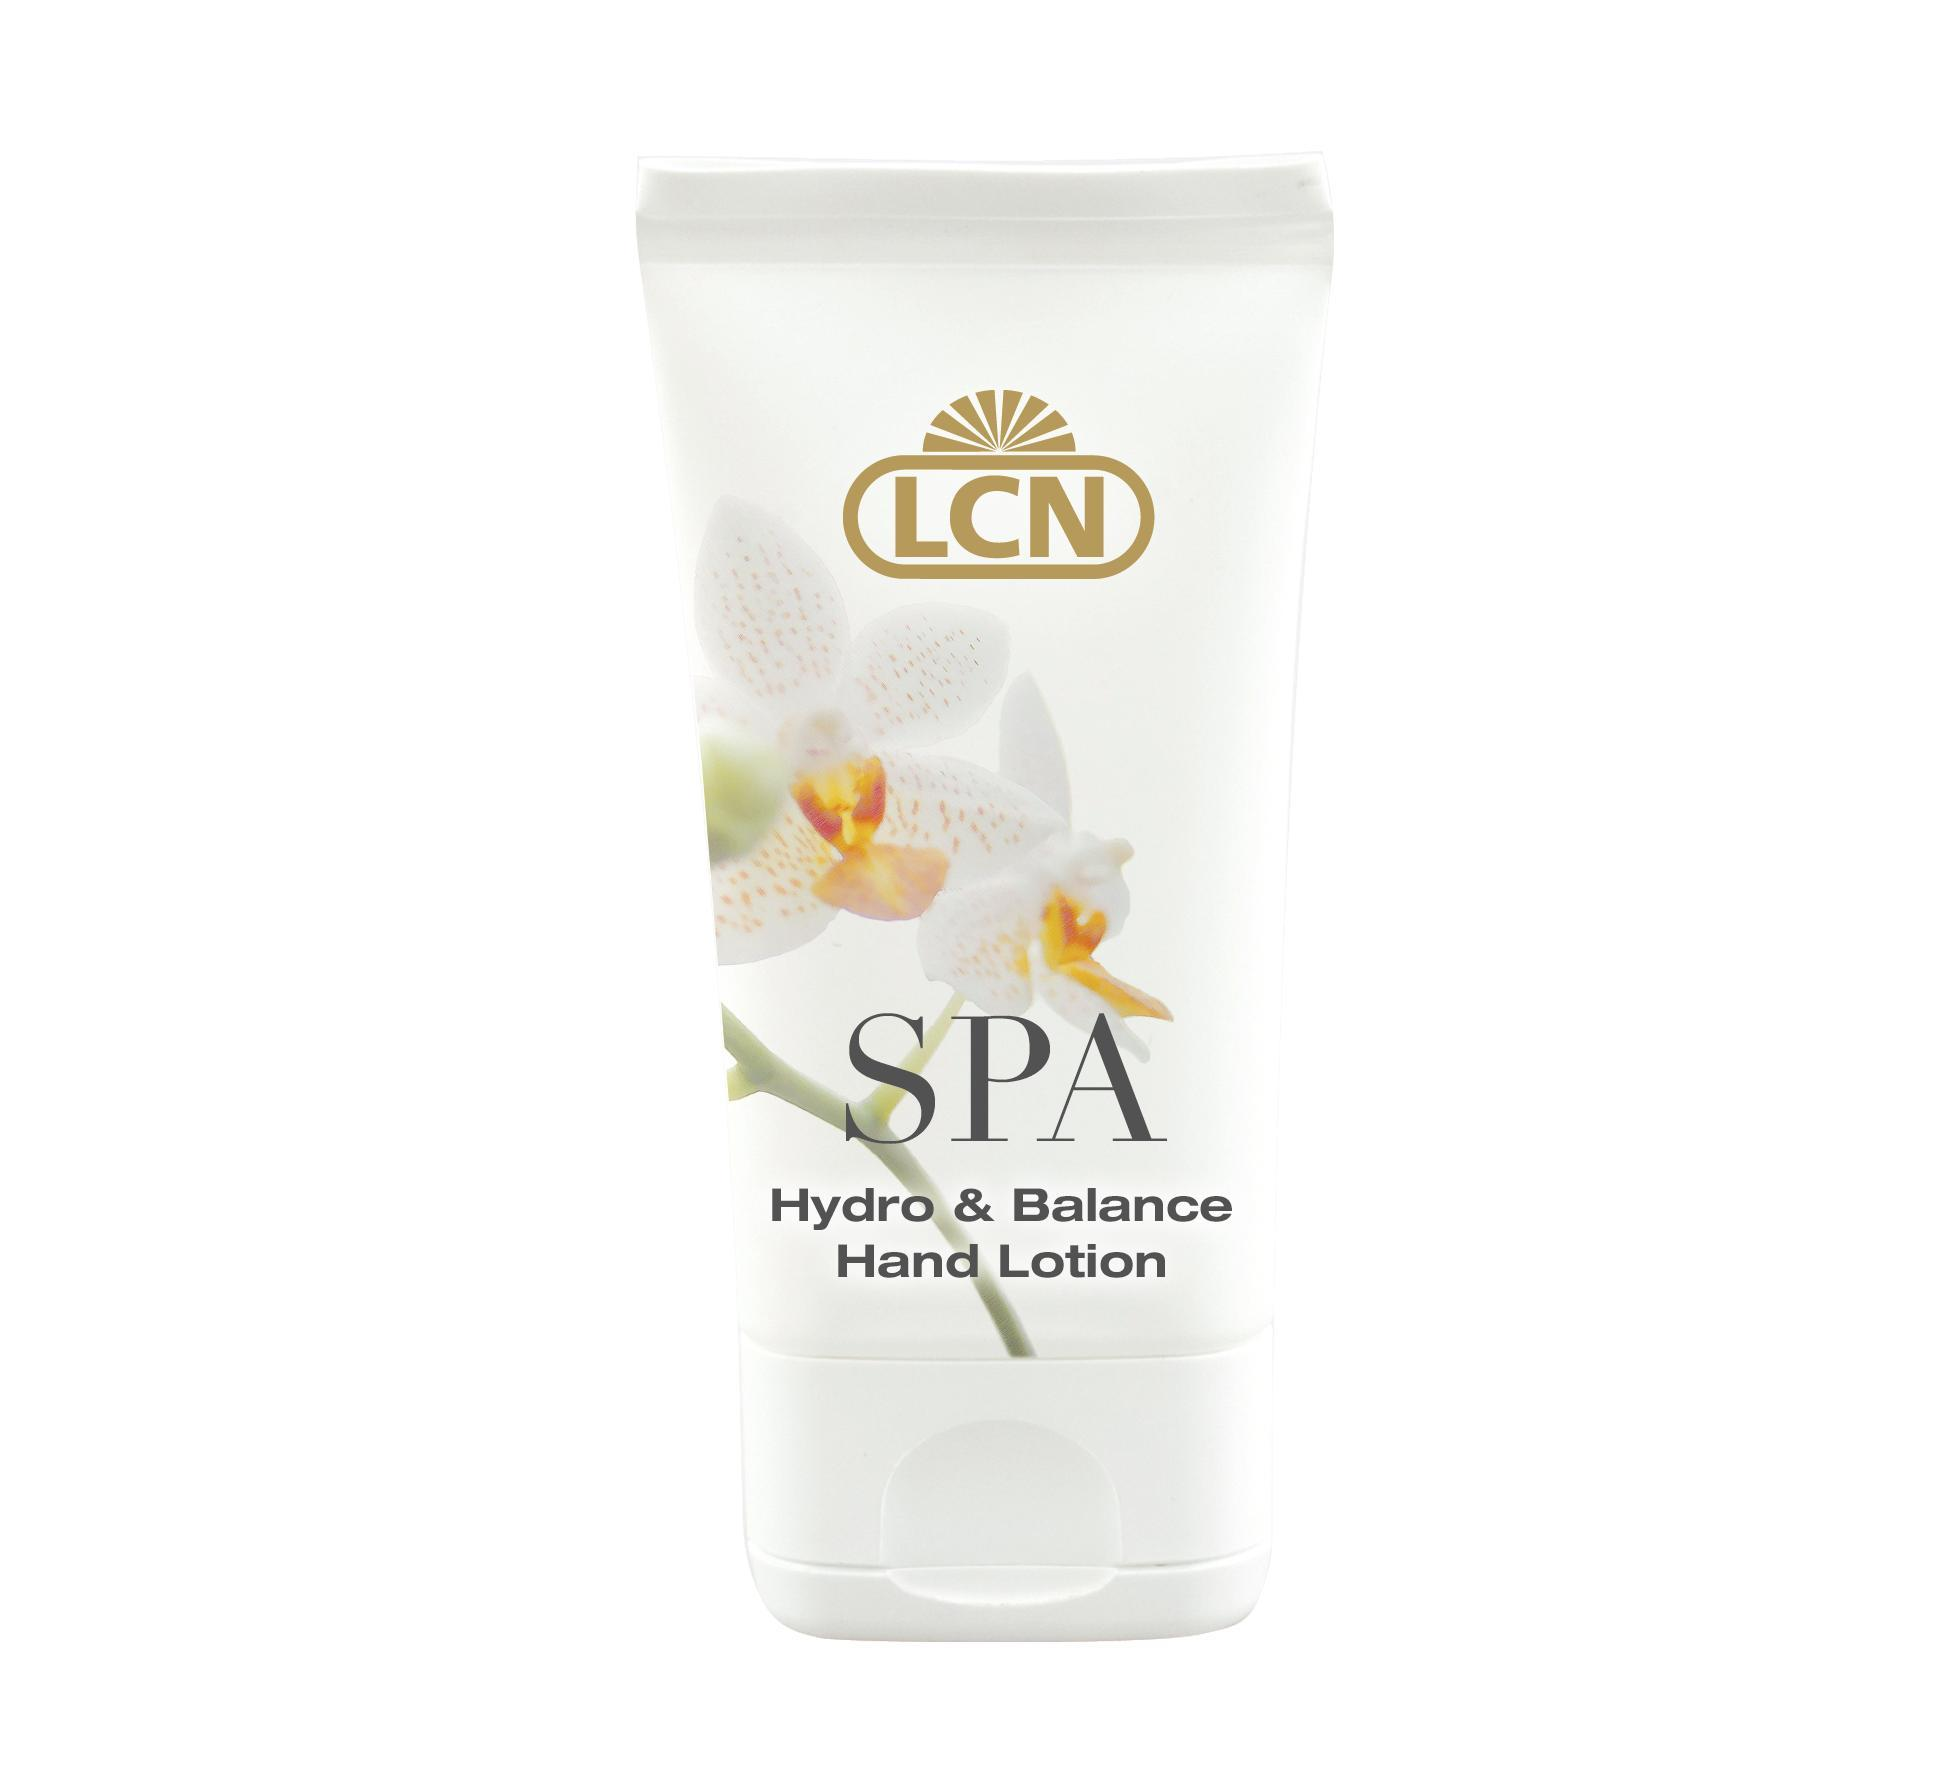 SPA Hydro & Balance Hand Lotion, 50ml